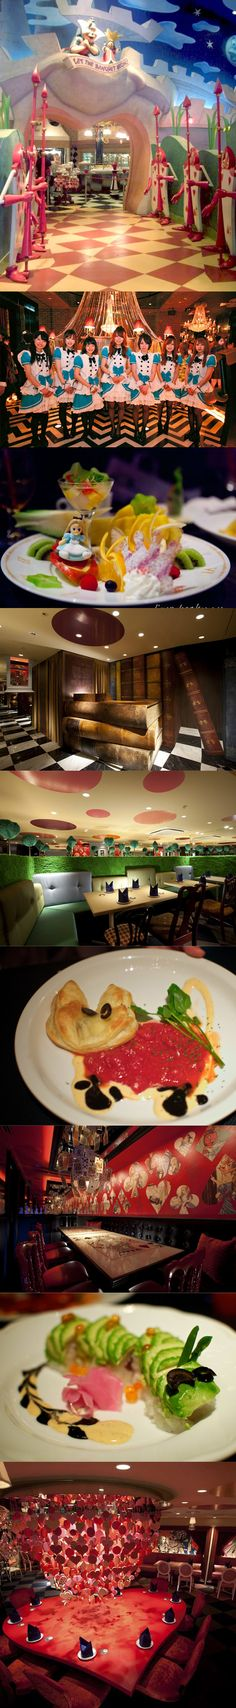 {FOOD} Alice in (Fantasy Book) Wonderland Themed Restaurant, Tokyo.